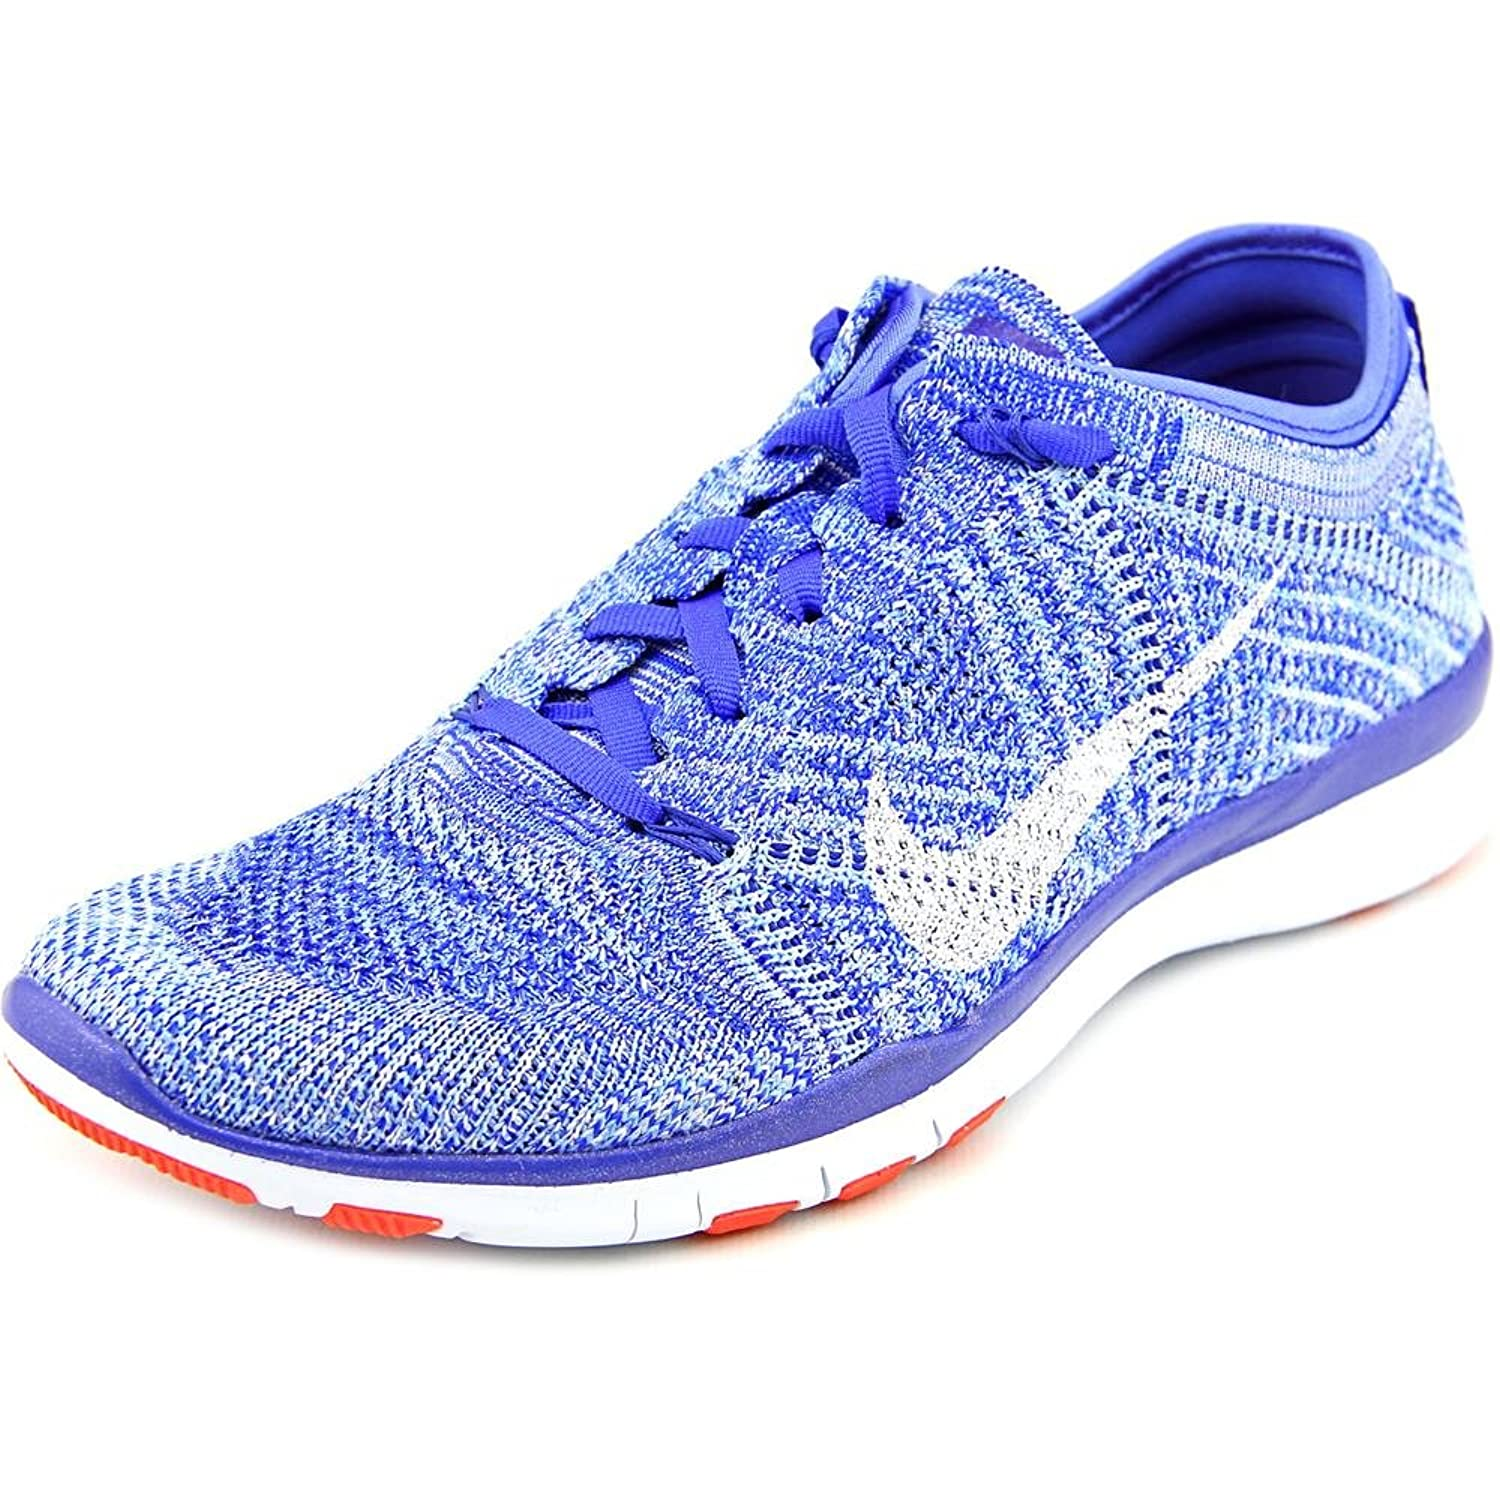 san francisco ab2da 72139 high-quality Nike Womens Free TR Flyknit Racer Blue Crimson White Sneaker.